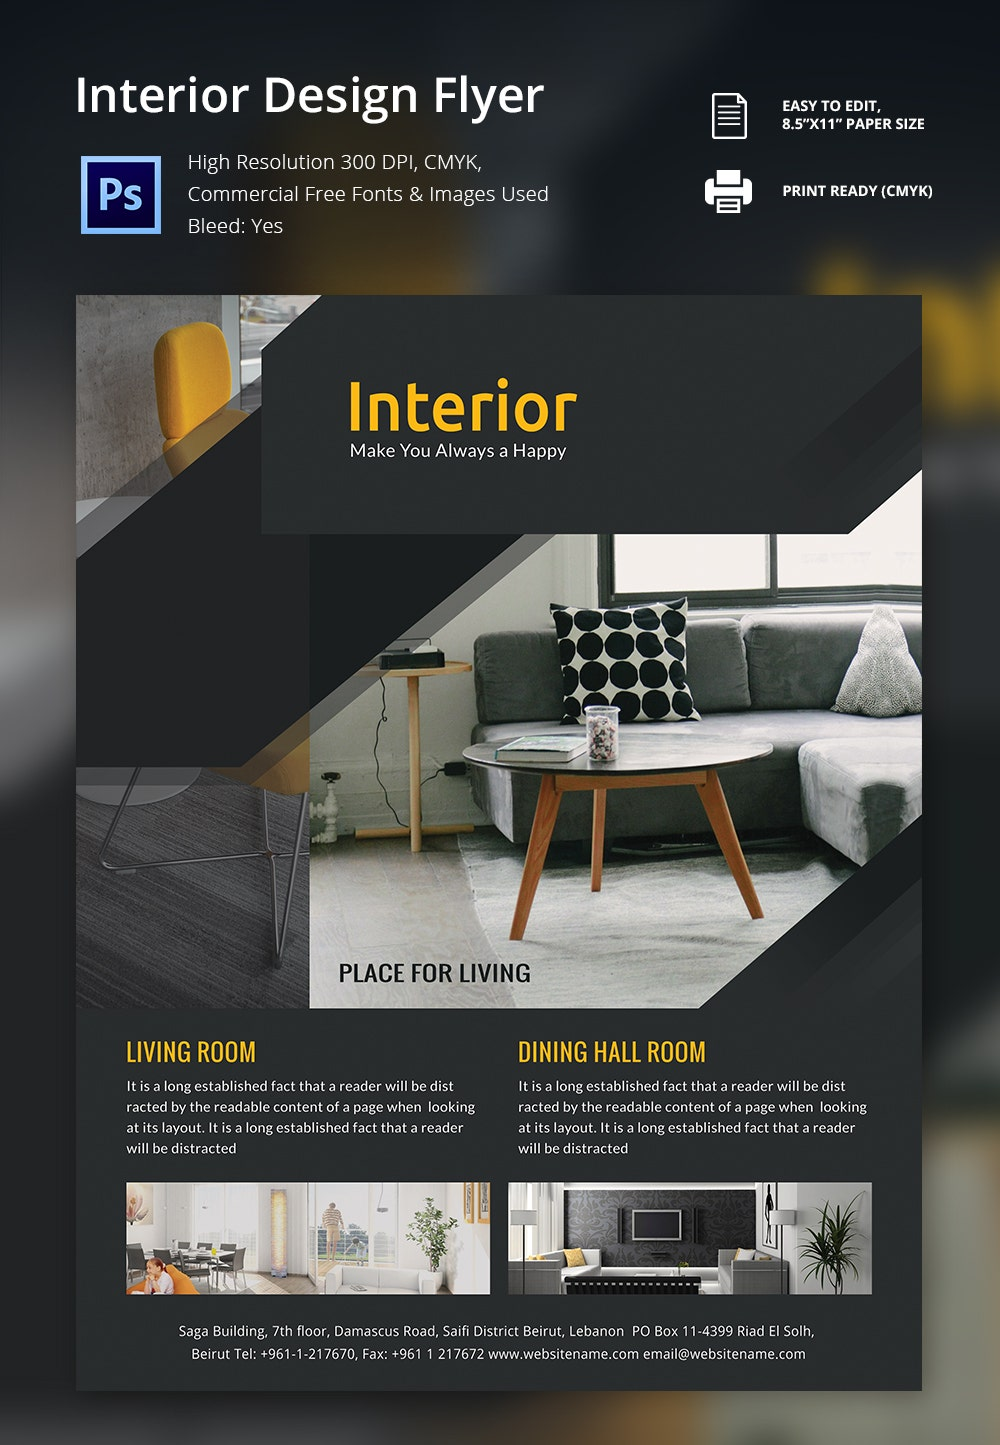 Interior design brochure 25 free psd eps indesign format download free premium templates Free interior design